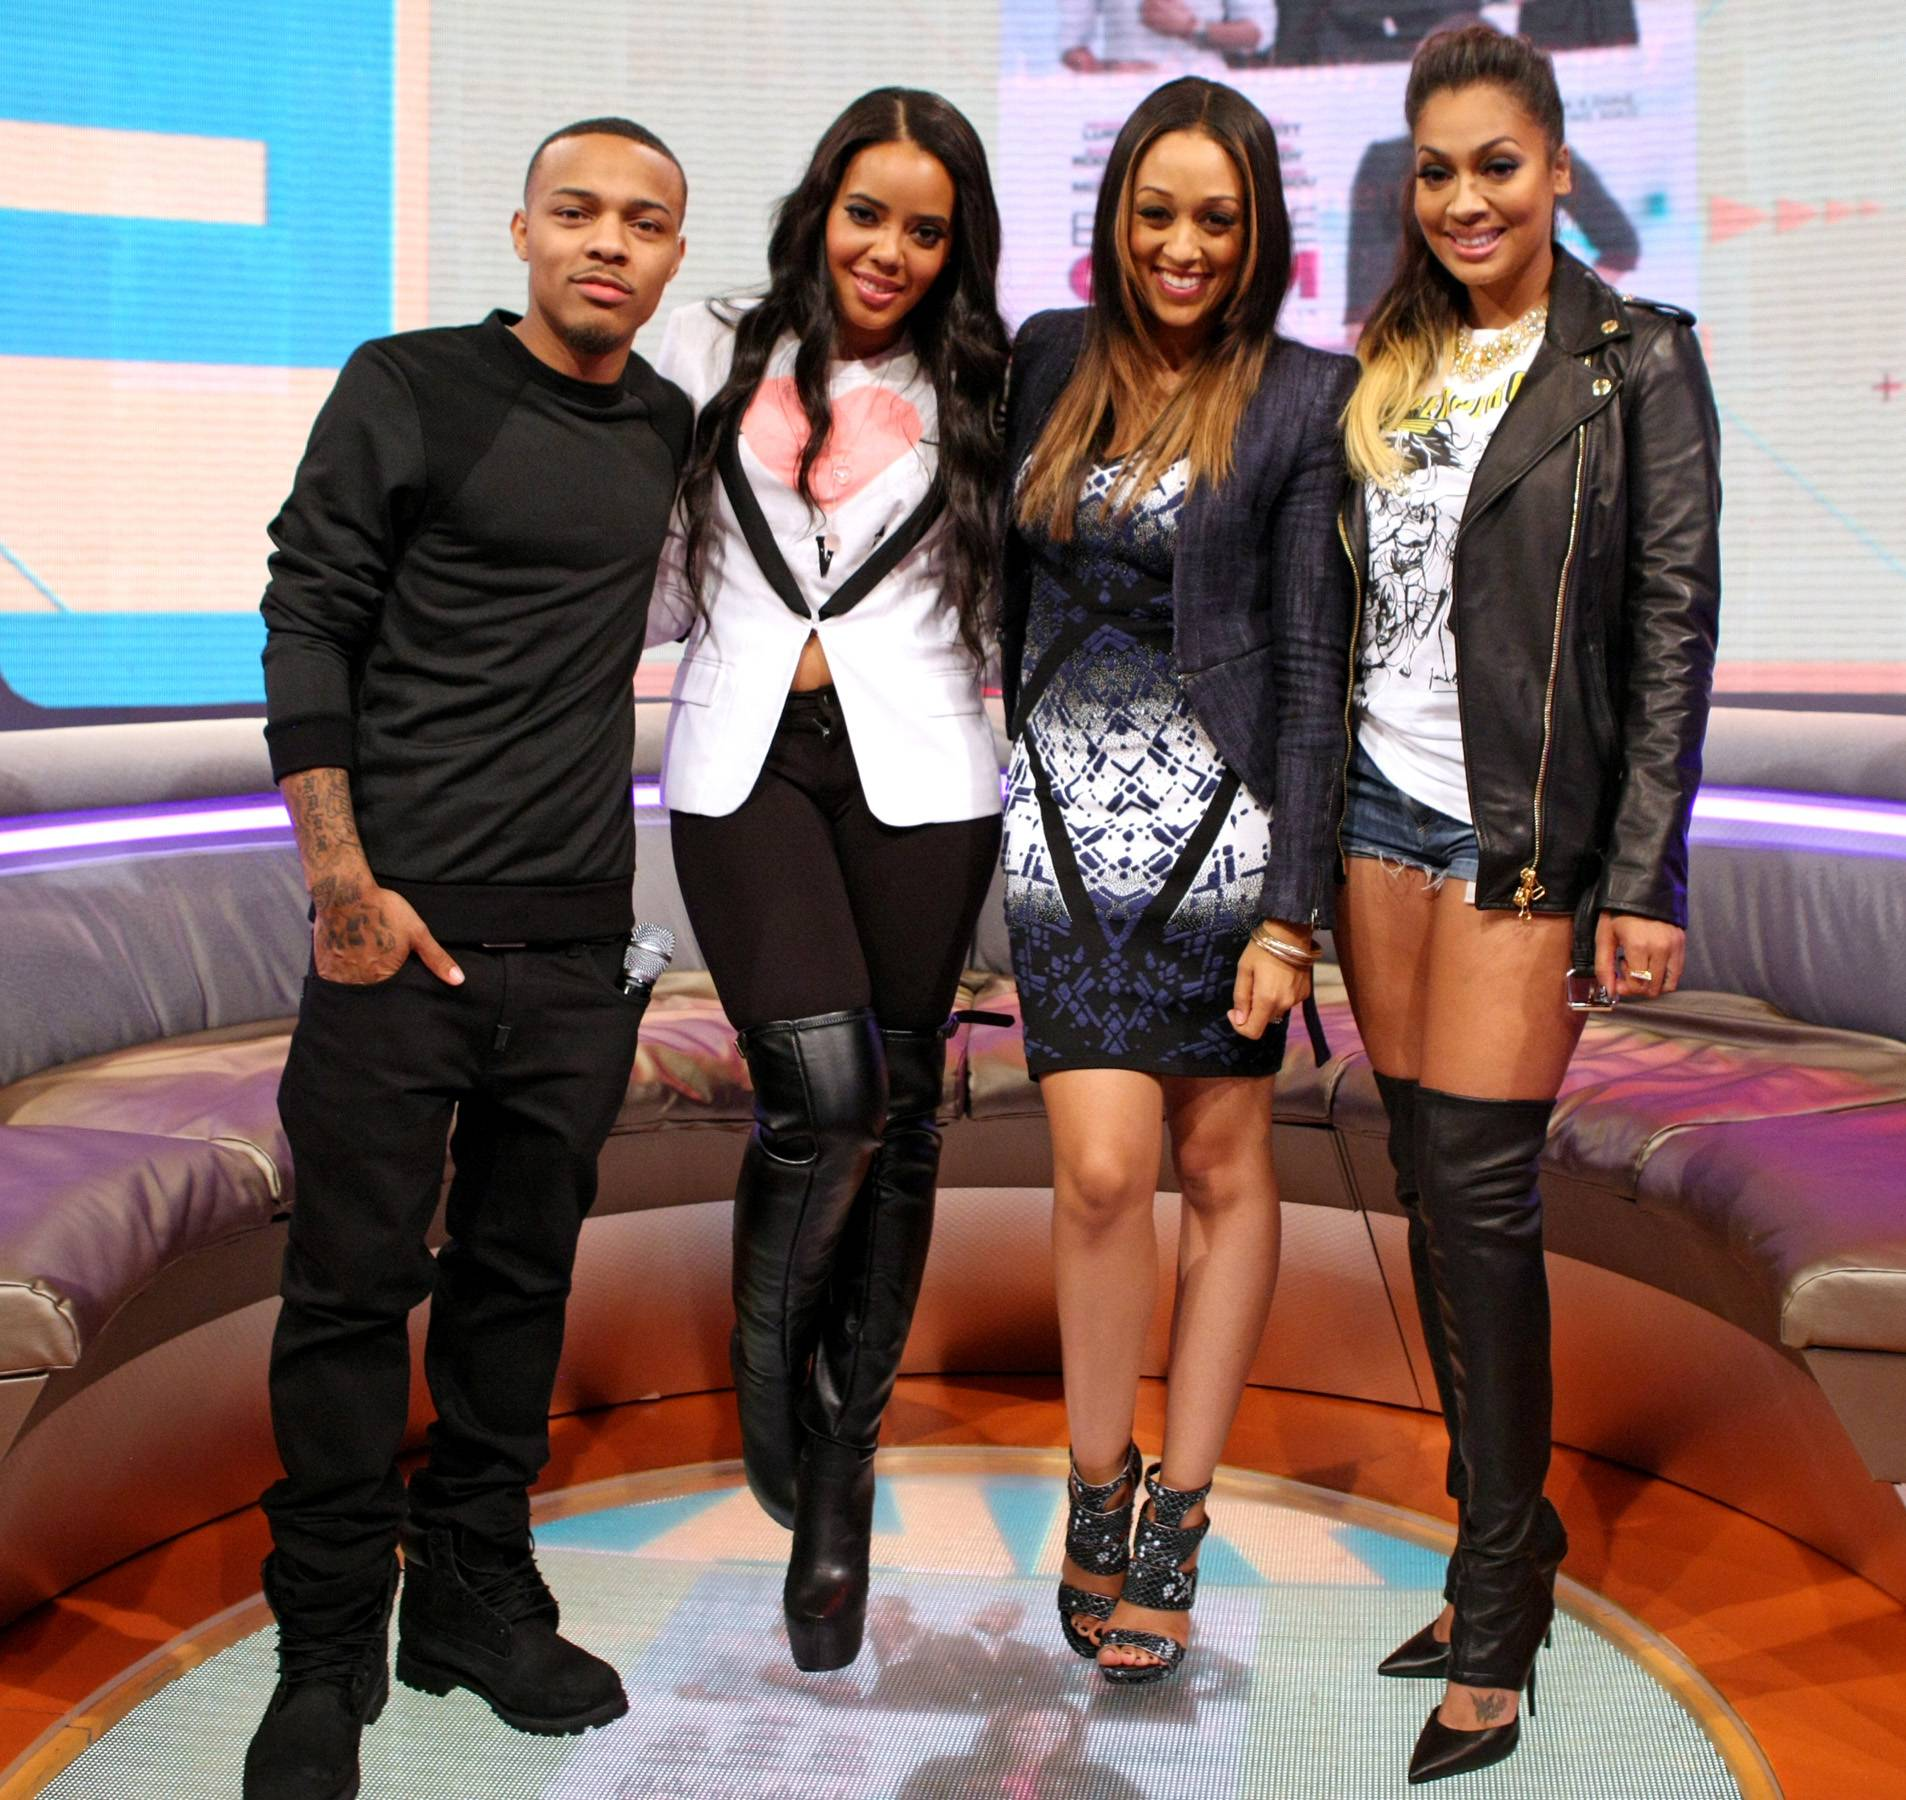 Instant Friends - Bow Wow, Angela Simmons, Tia Mowry and LaLa Anthony pose for the camera. (Photo: Bennett Raglin/BET/Getty Images for BET)